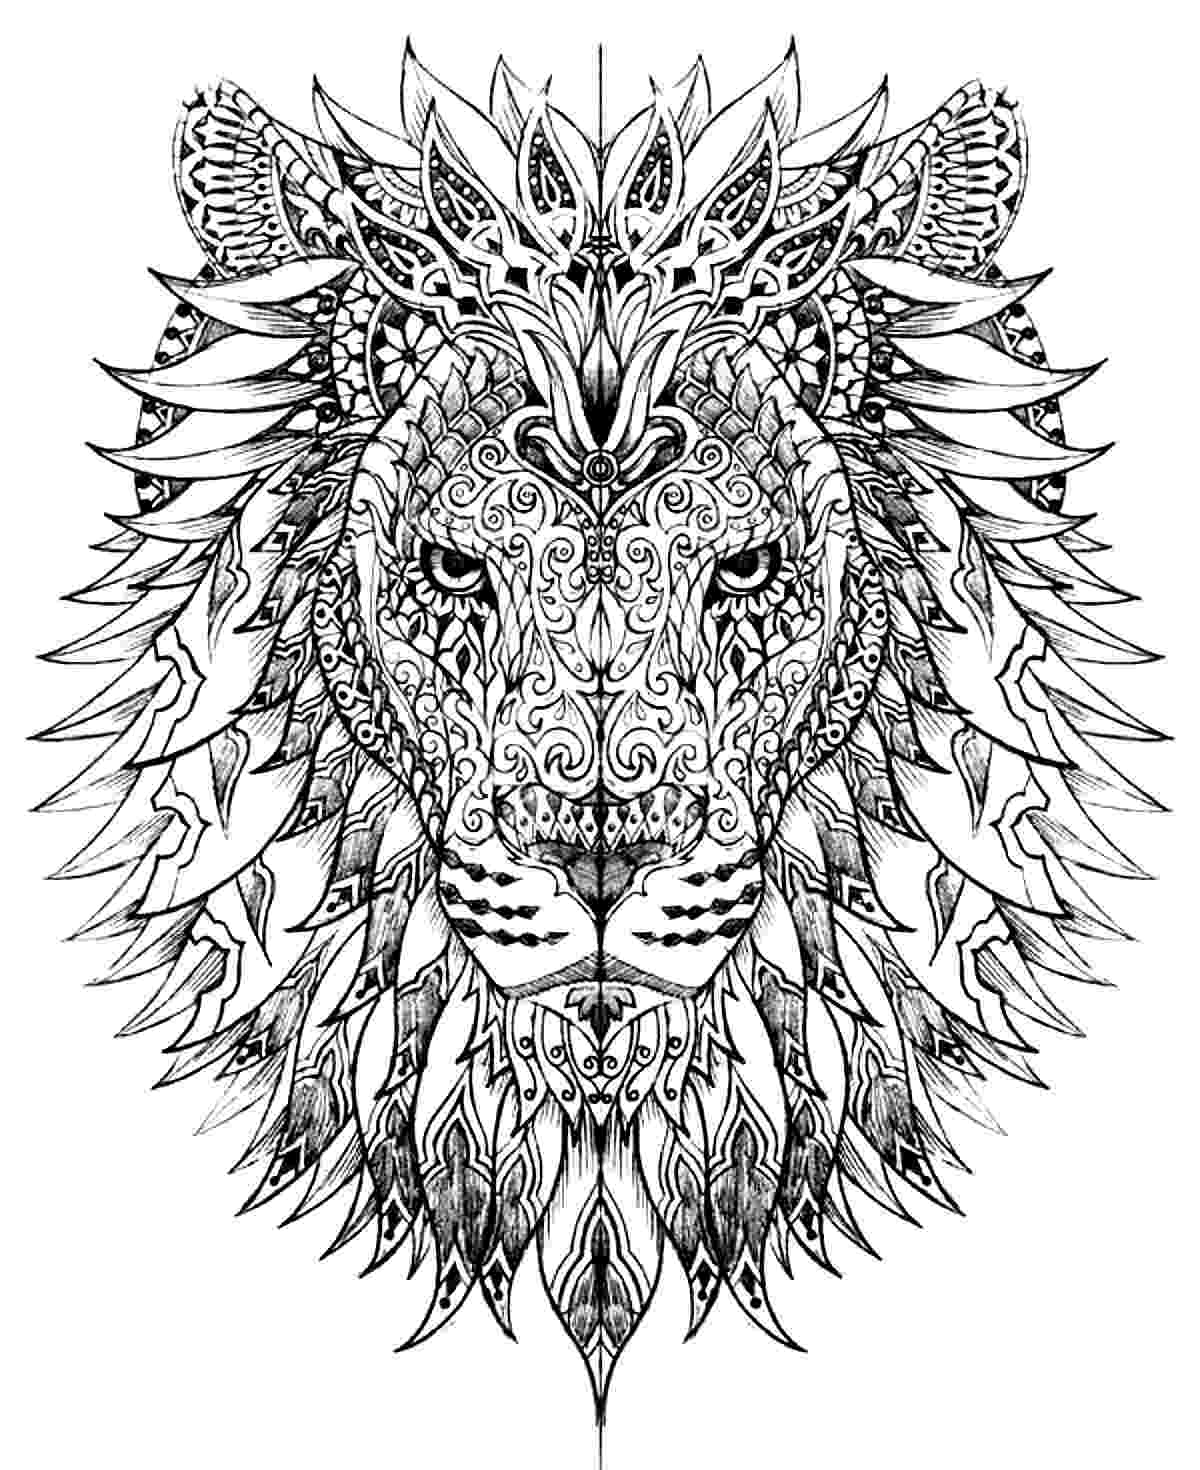 coloring pages difficult free printable abstract coloring pages for adults difficult coloring pages